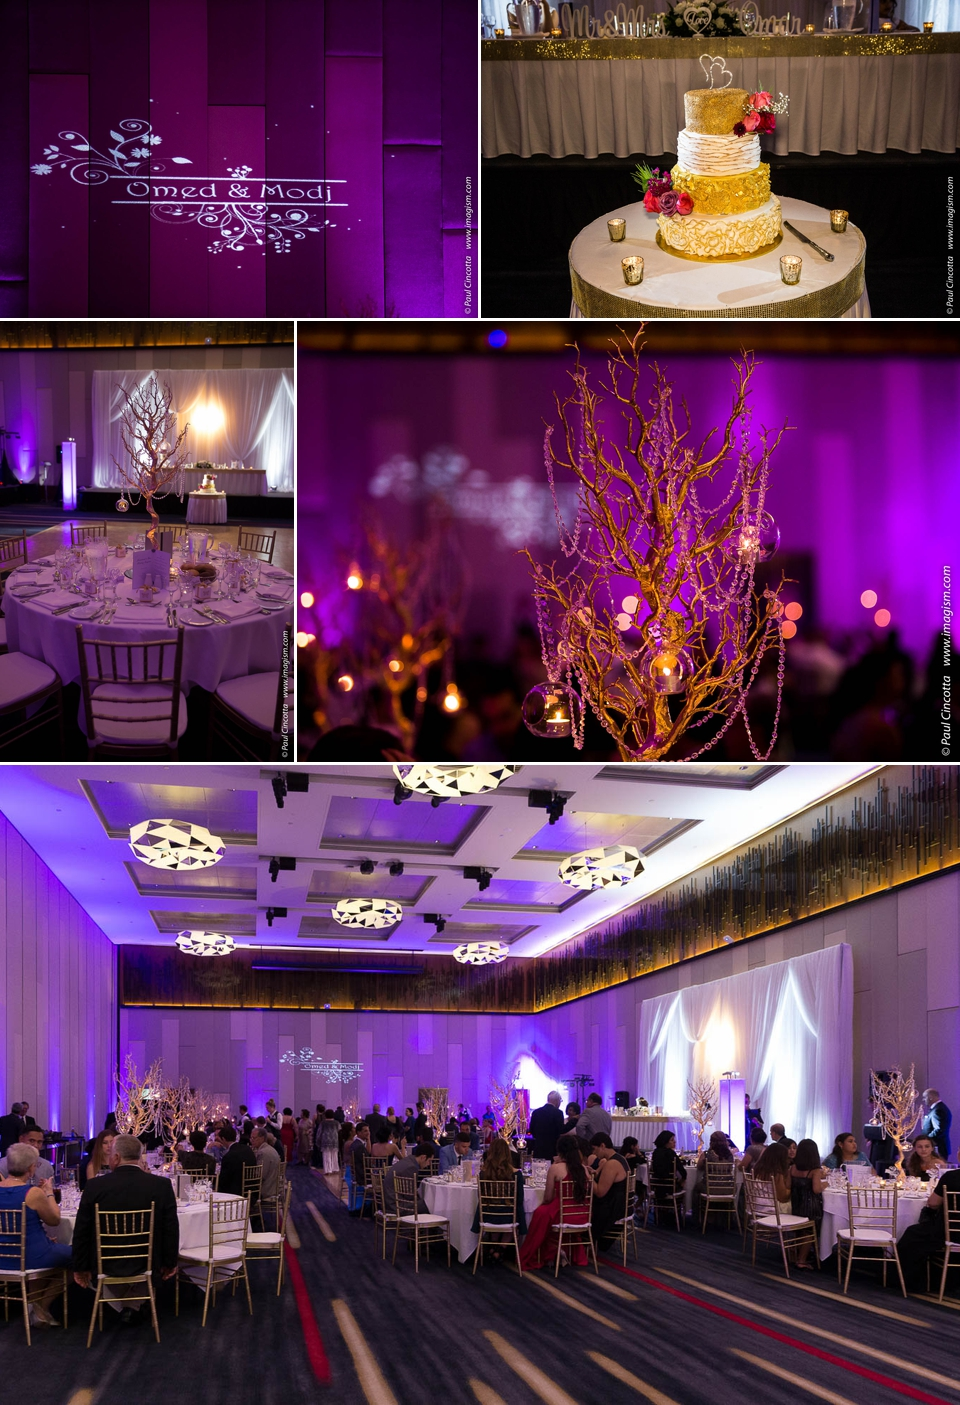 Gold Coast Wedding Photographer - imagism Photography by Paul Cincotta 20.jpg